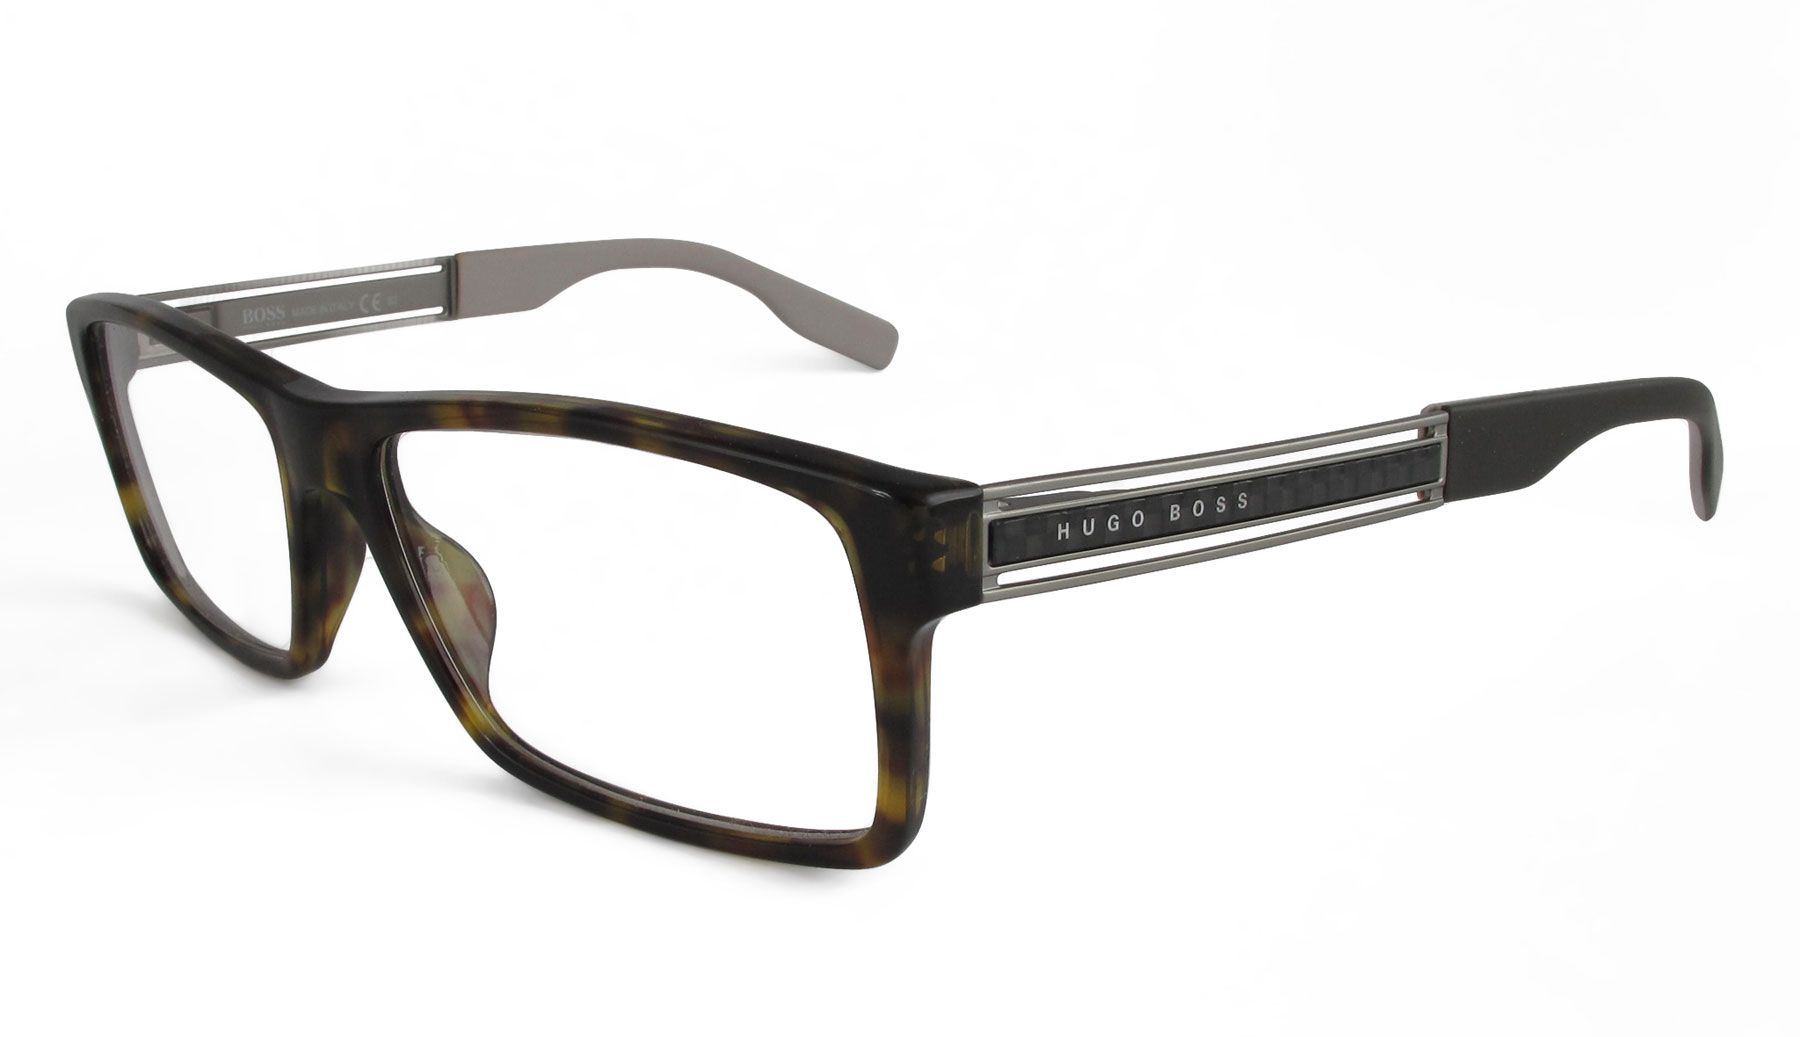 c37394f4b6 Hugo Boss Boys Clothes Style, Optician, Guy Gifts, Gifts For Him, Hugo